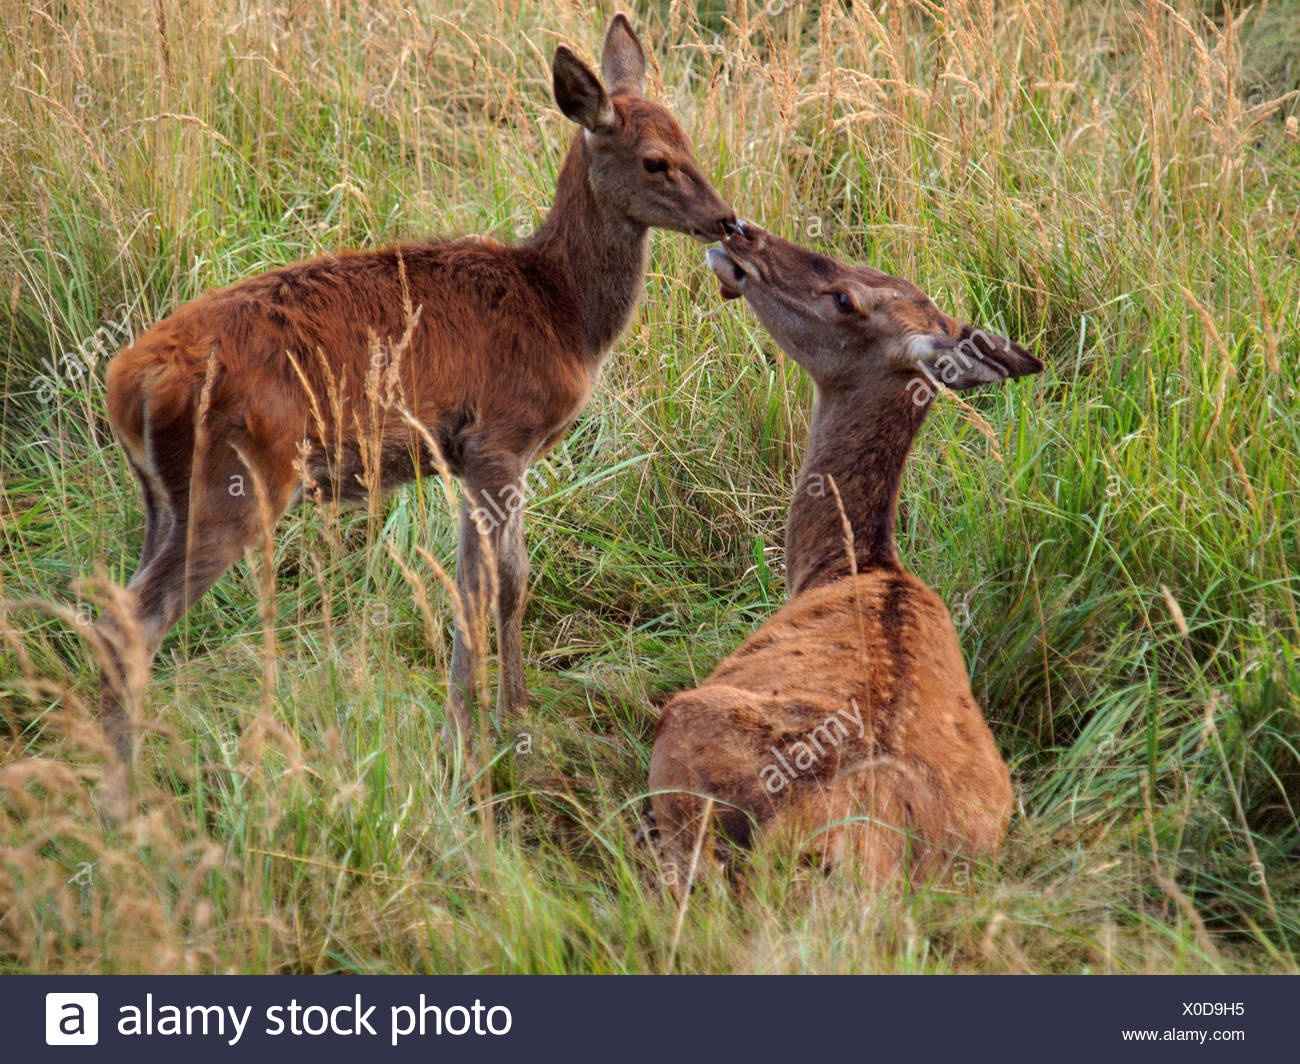 red deer (Cervus elaphus), female with calf, Germany Stock Photo